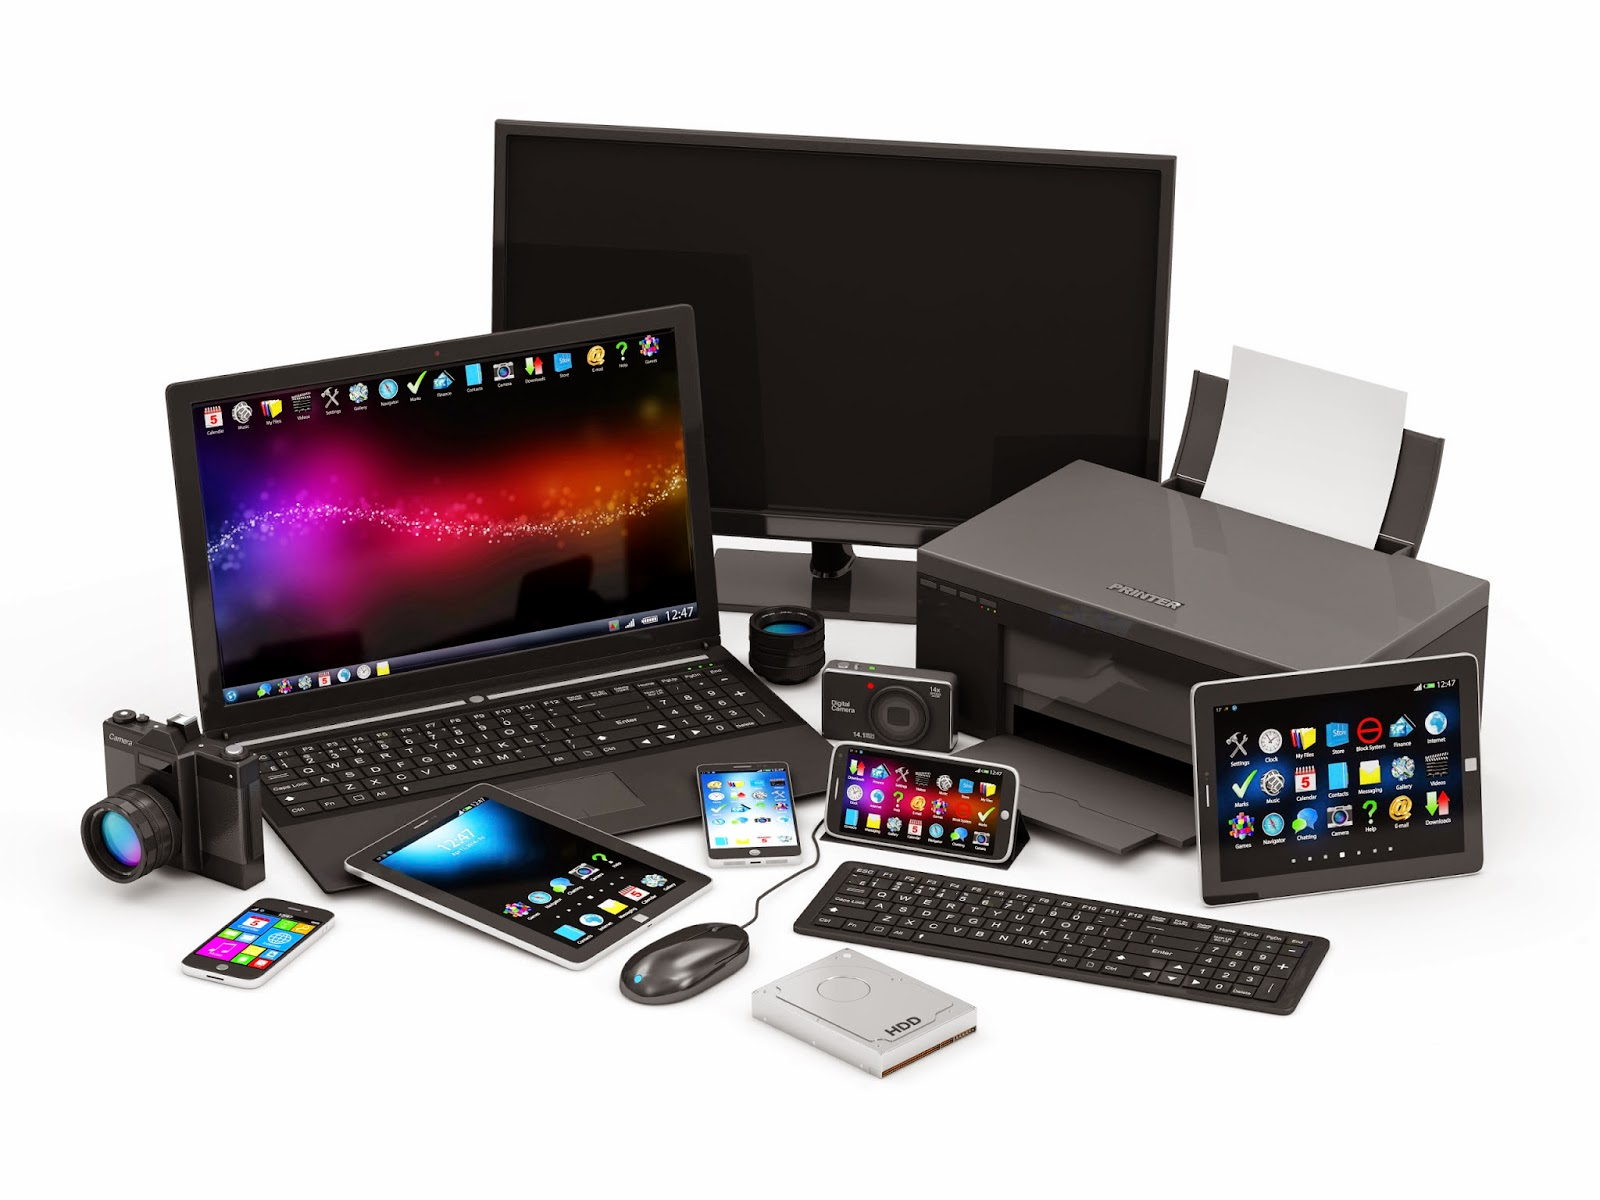 essay electronics devices Essay on electronics devices usb is a write an essay on the advantages and disadvantages of internet system for connecting a wide.